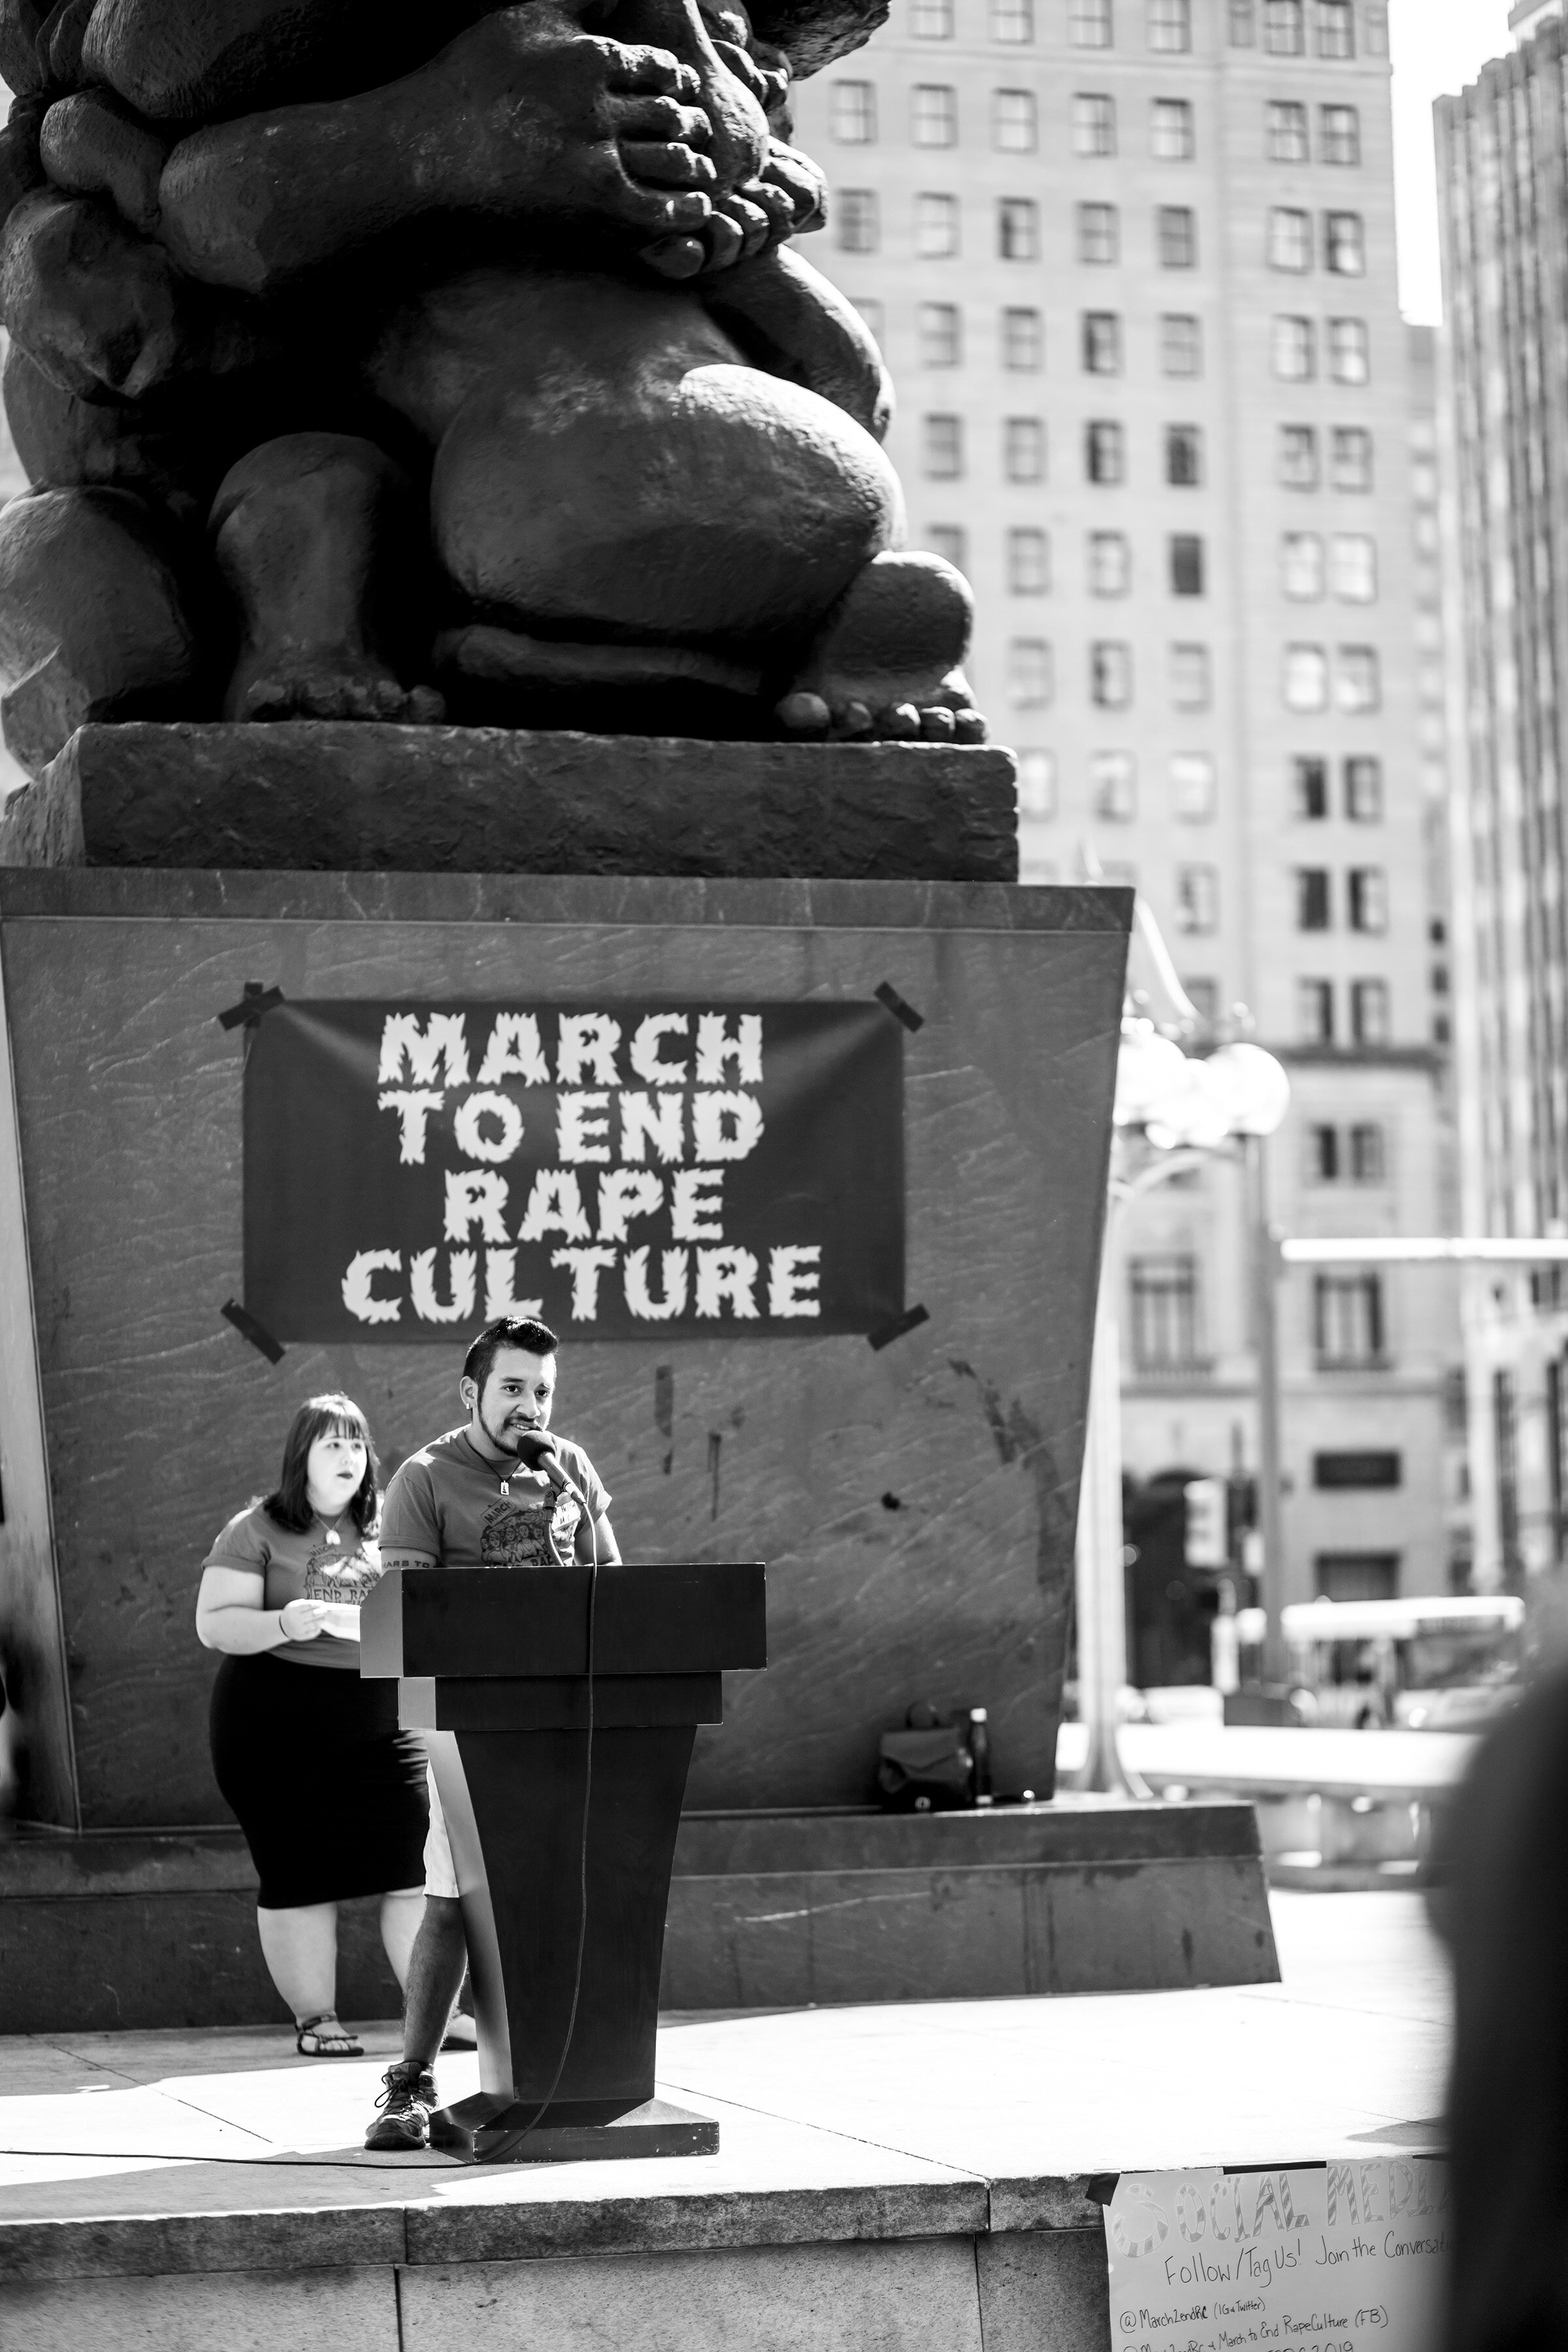 MarchToEndRapeCulture_2019_MikeArrison_BW_092919_0008.jpg